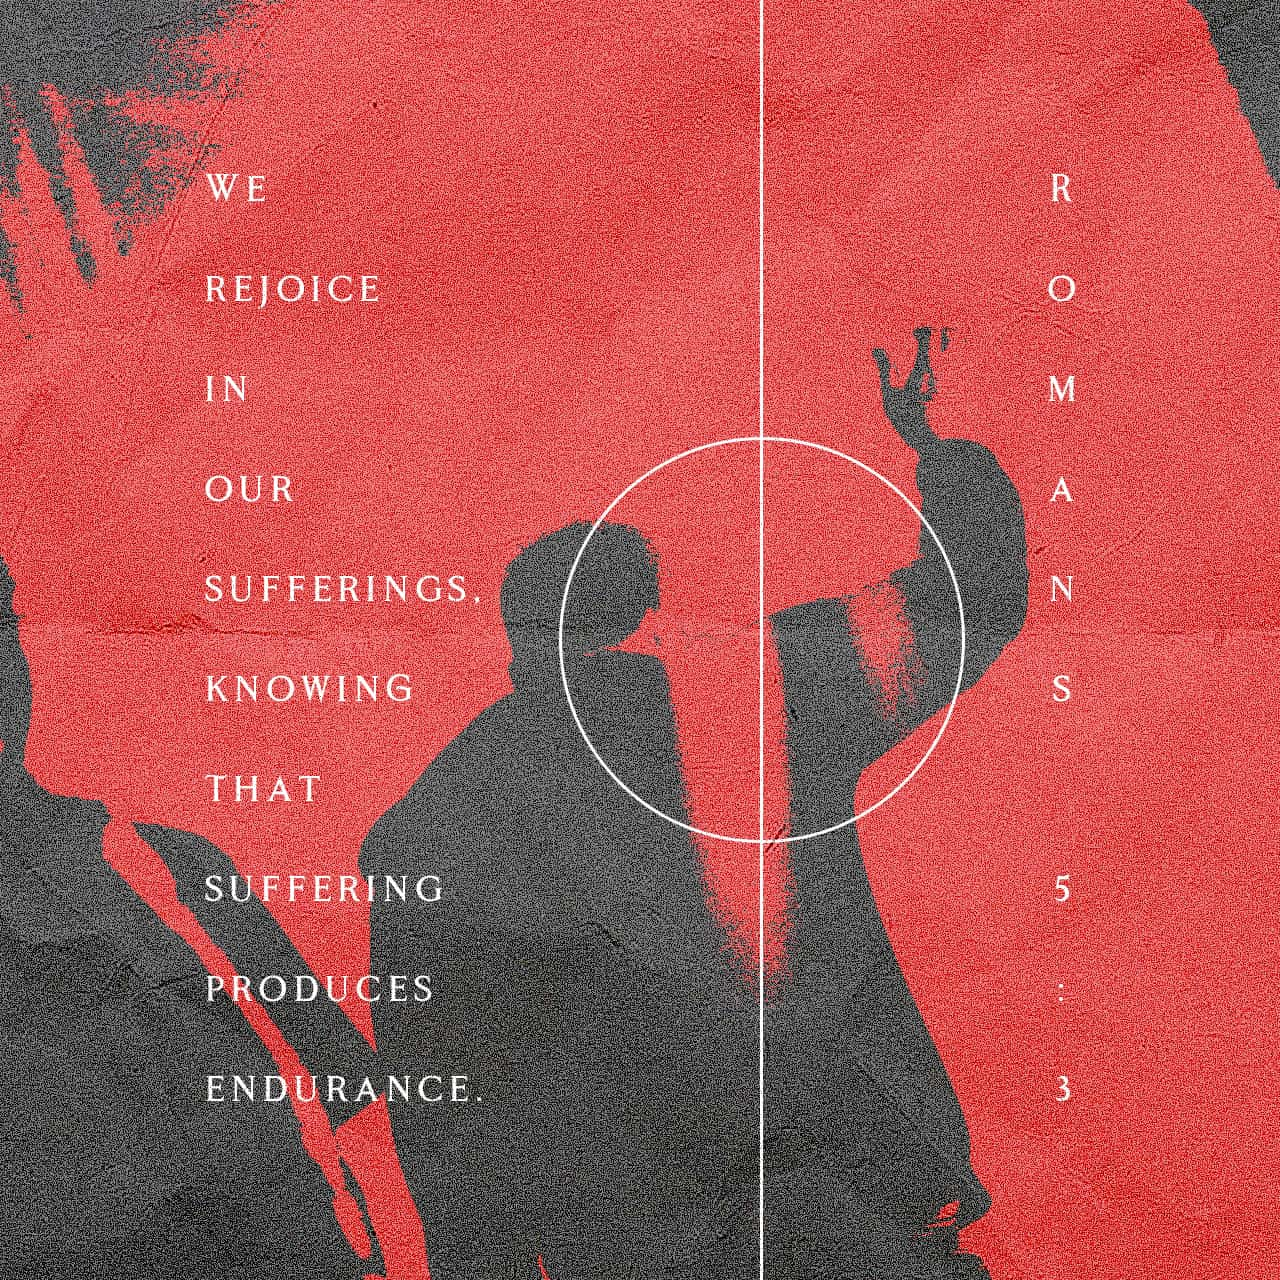 Romans 5:3-5 Not only that, but we rejoice in our sufferings, knowing that suffering produces endurance, and endurance produces character, and character produces hope, and hope does not put us to shame, because Go | English Standard Version (ESV) | Download The Bible App Now